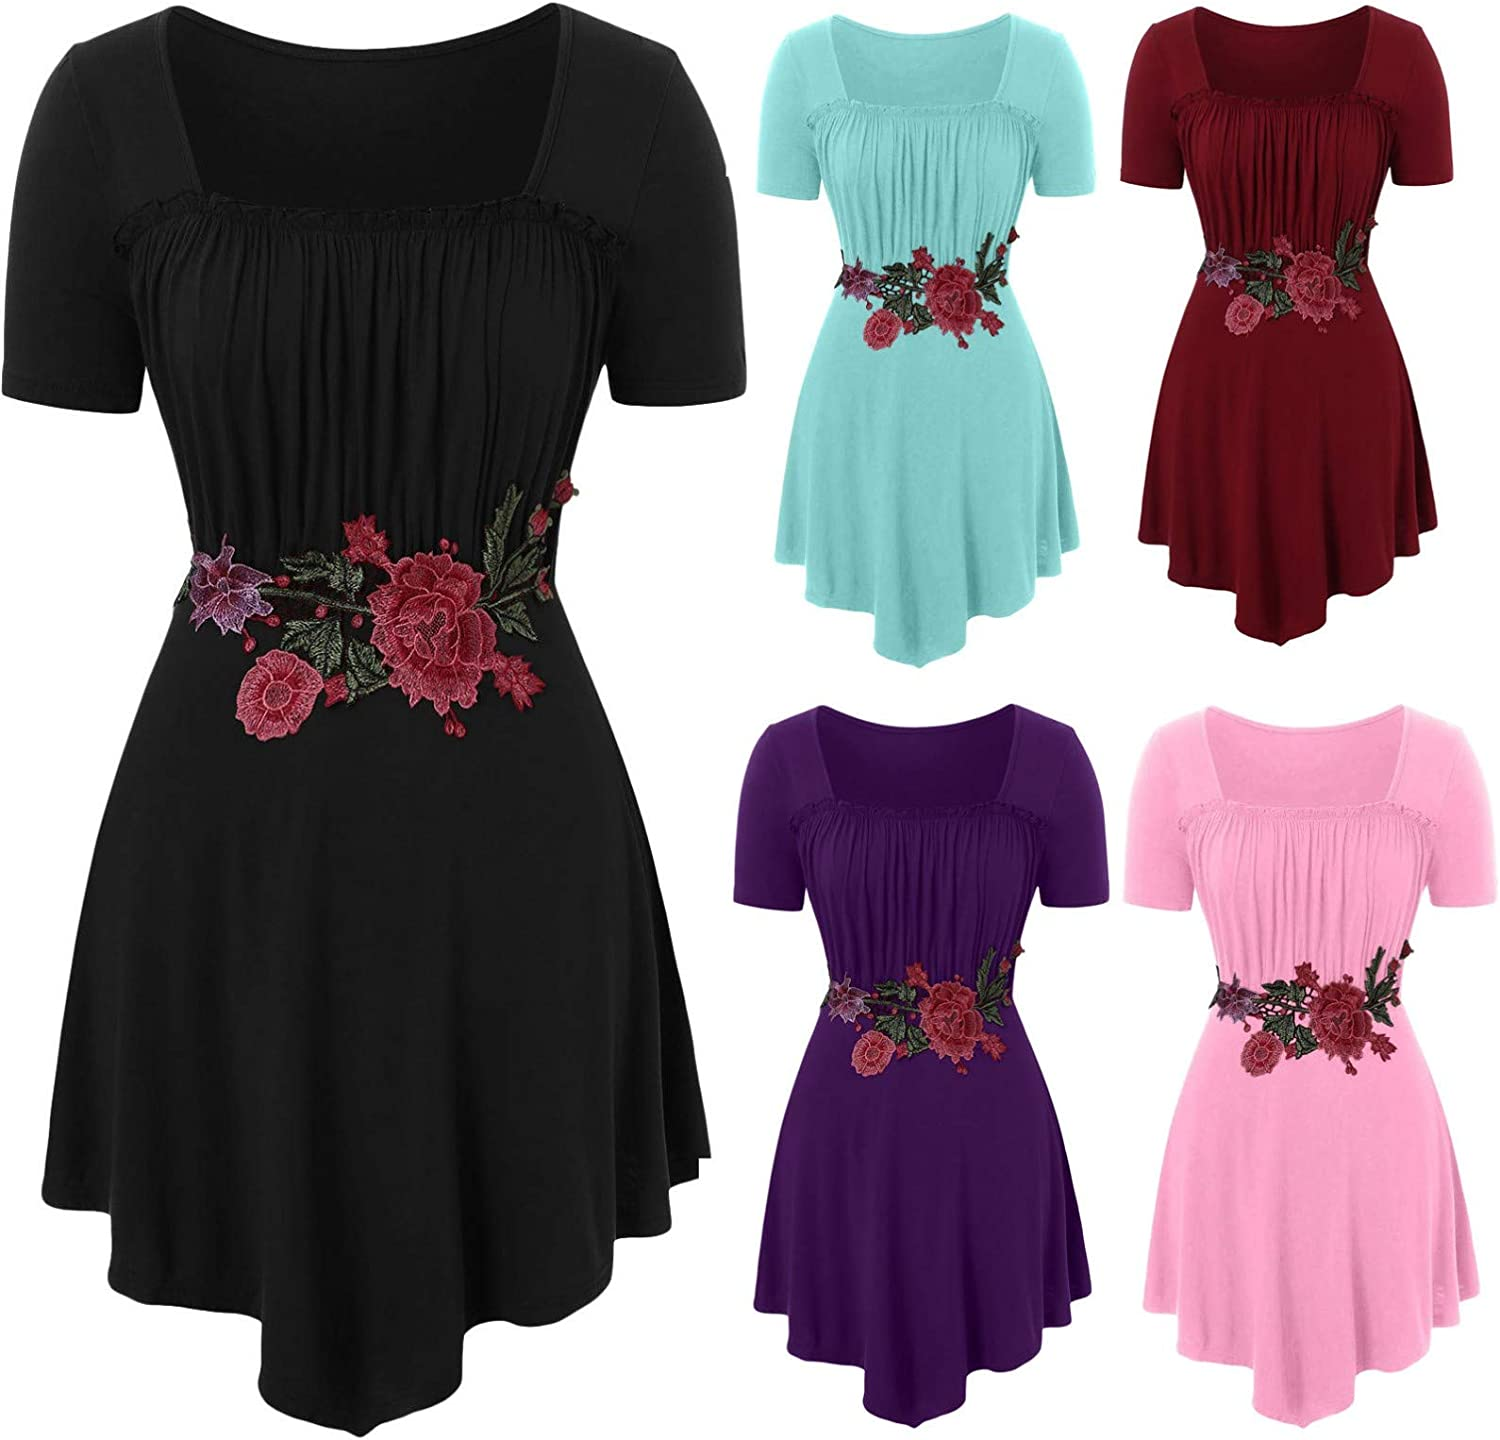 YOcheerful Plus Size Women Tops Embroidery Applique O-Neck Short Sleeve Loose T-Shirt Elegant Blouses